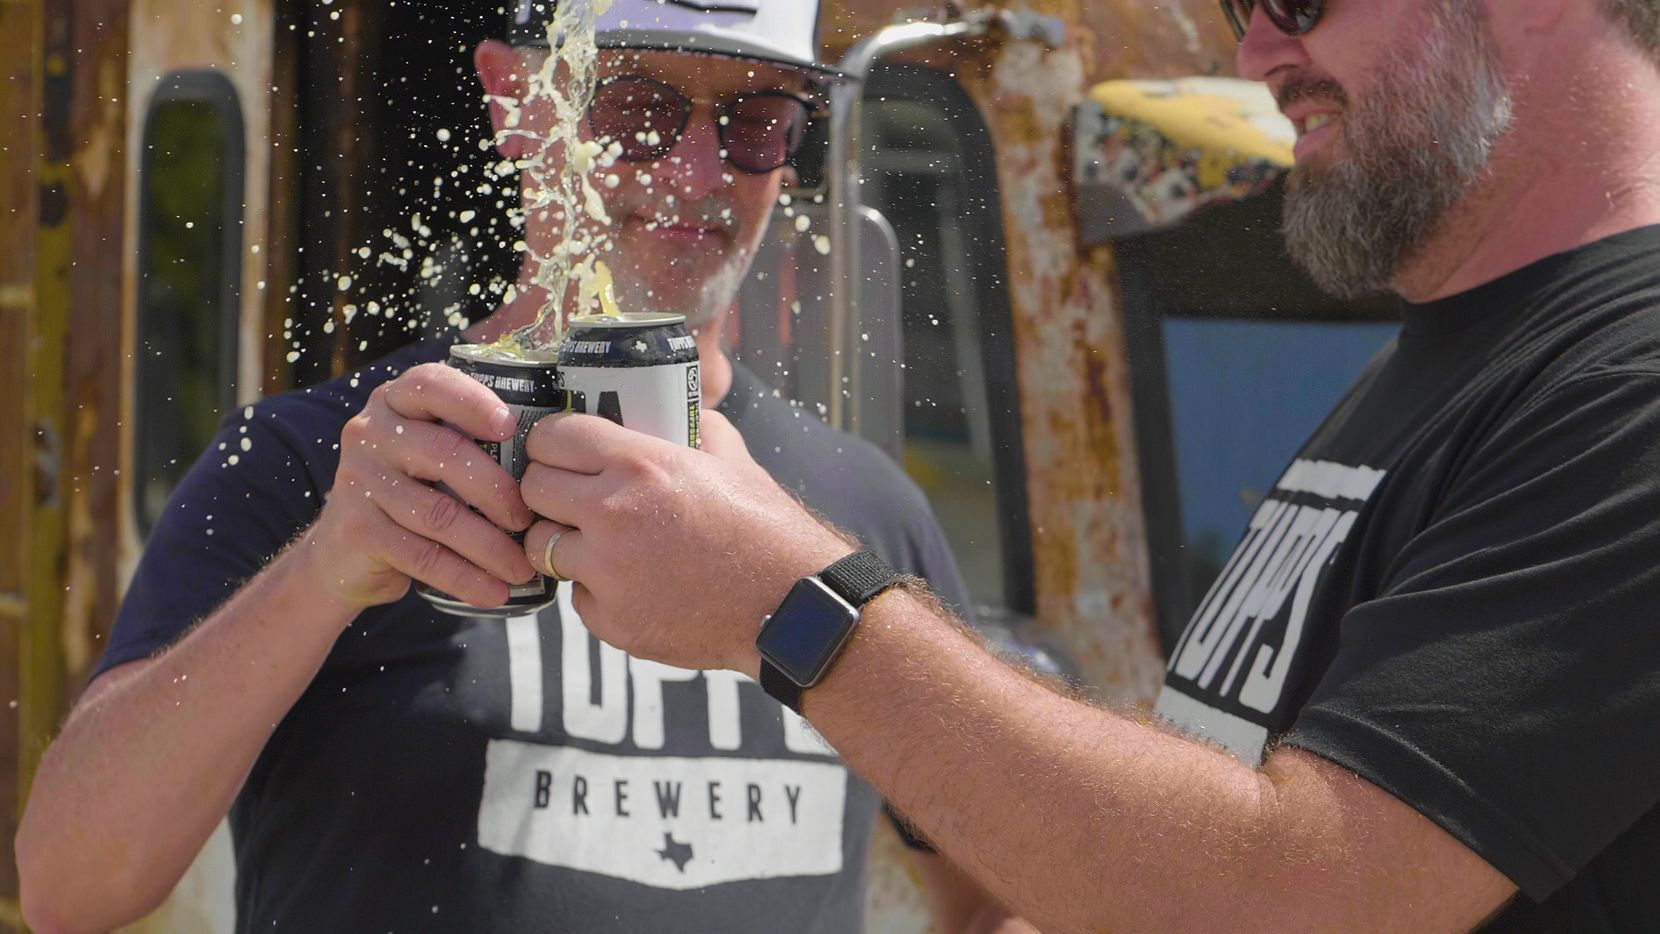 Keith Lewis, founder and president of TUPPS, and Chris Lewis, head brewer, make a toast.